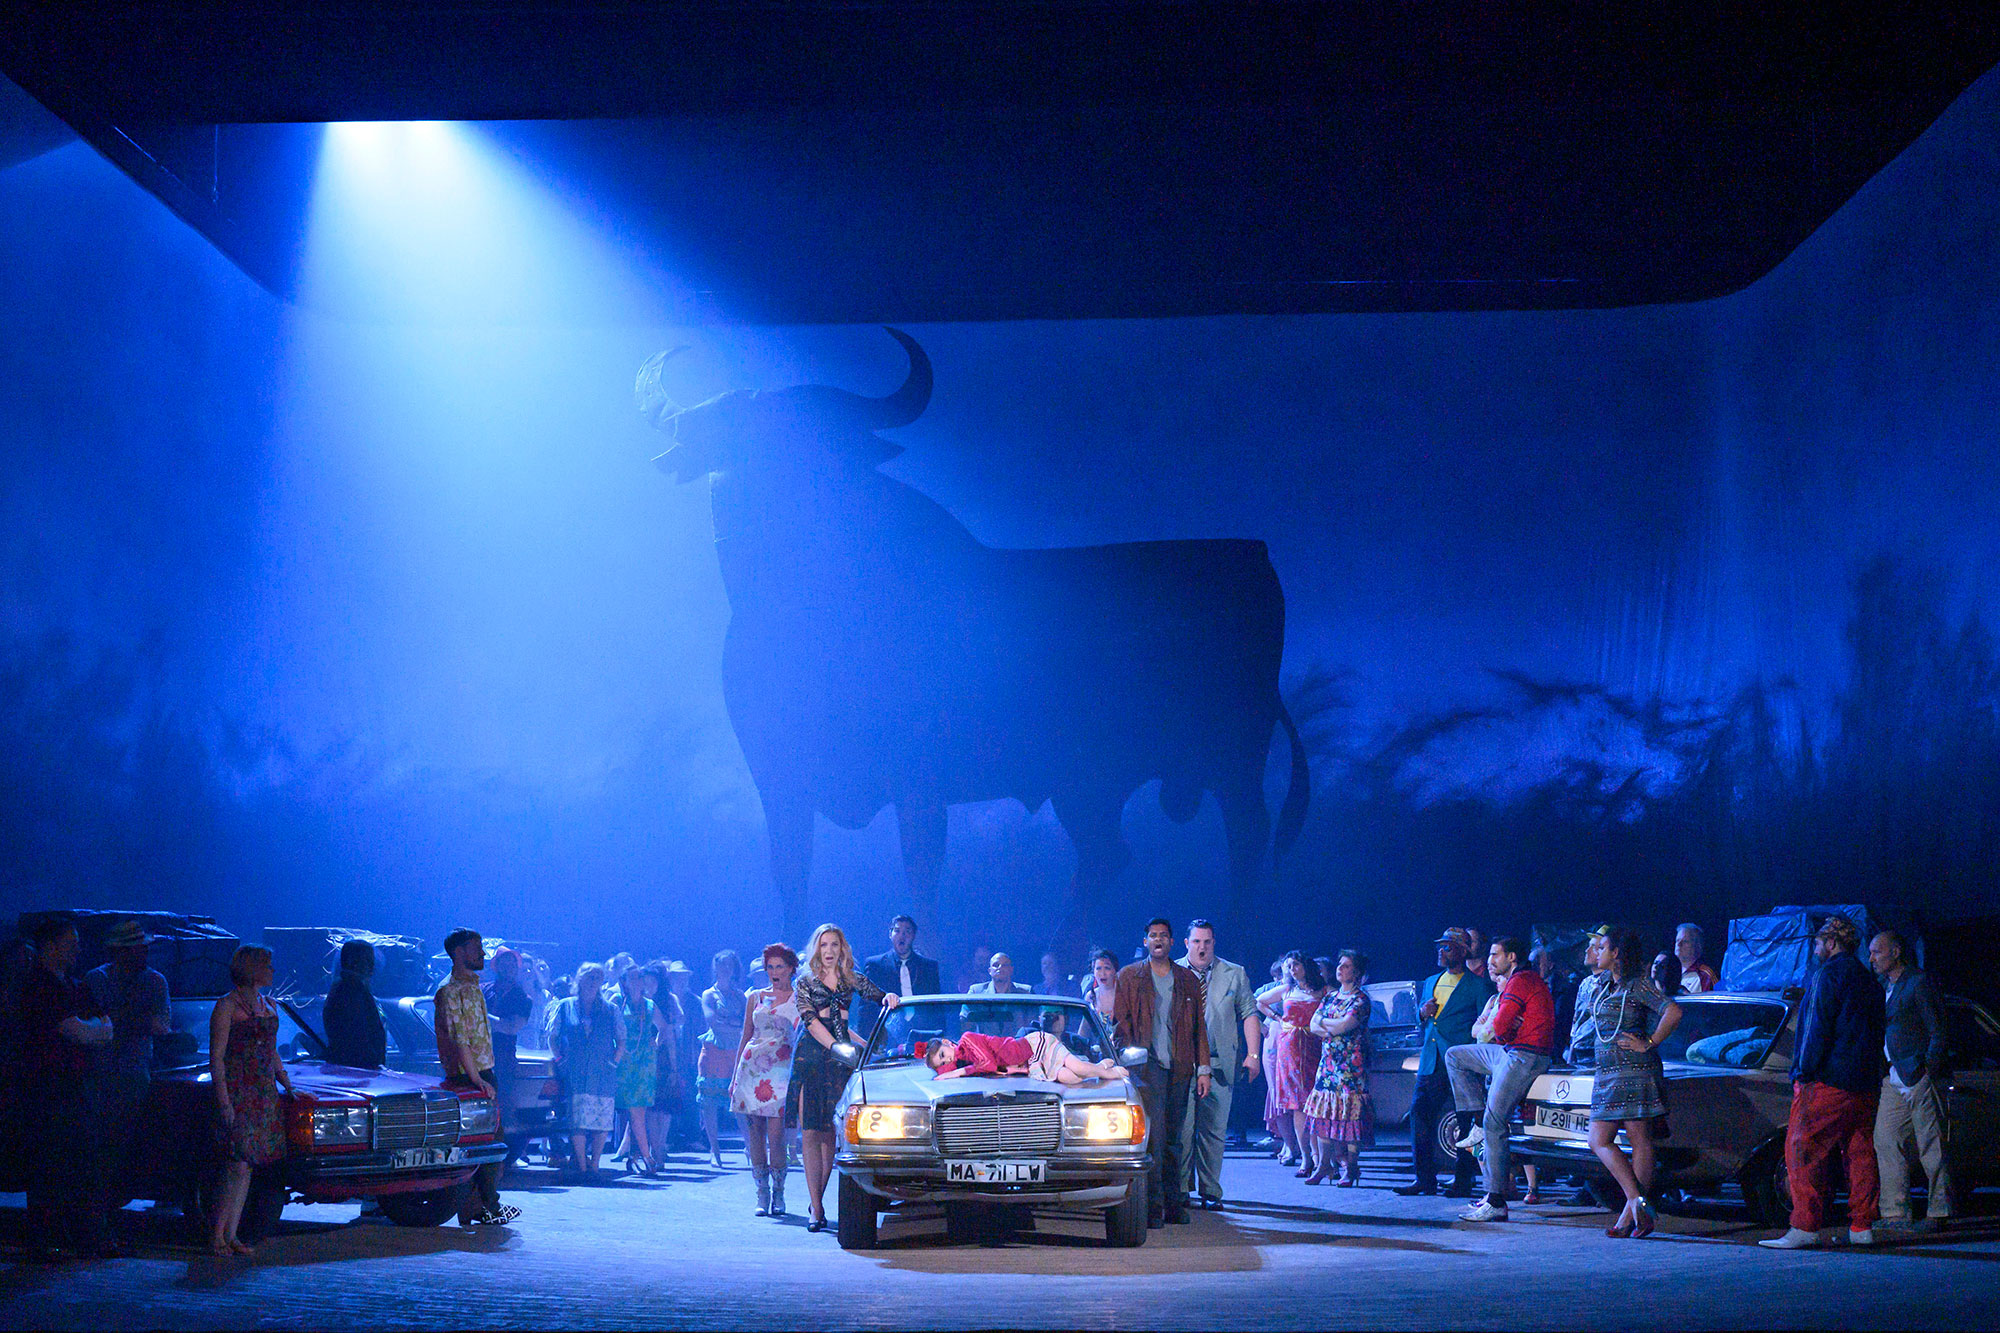 ENO Carmen 2020, ensemble shot waround cars, with silhouette of bull in background